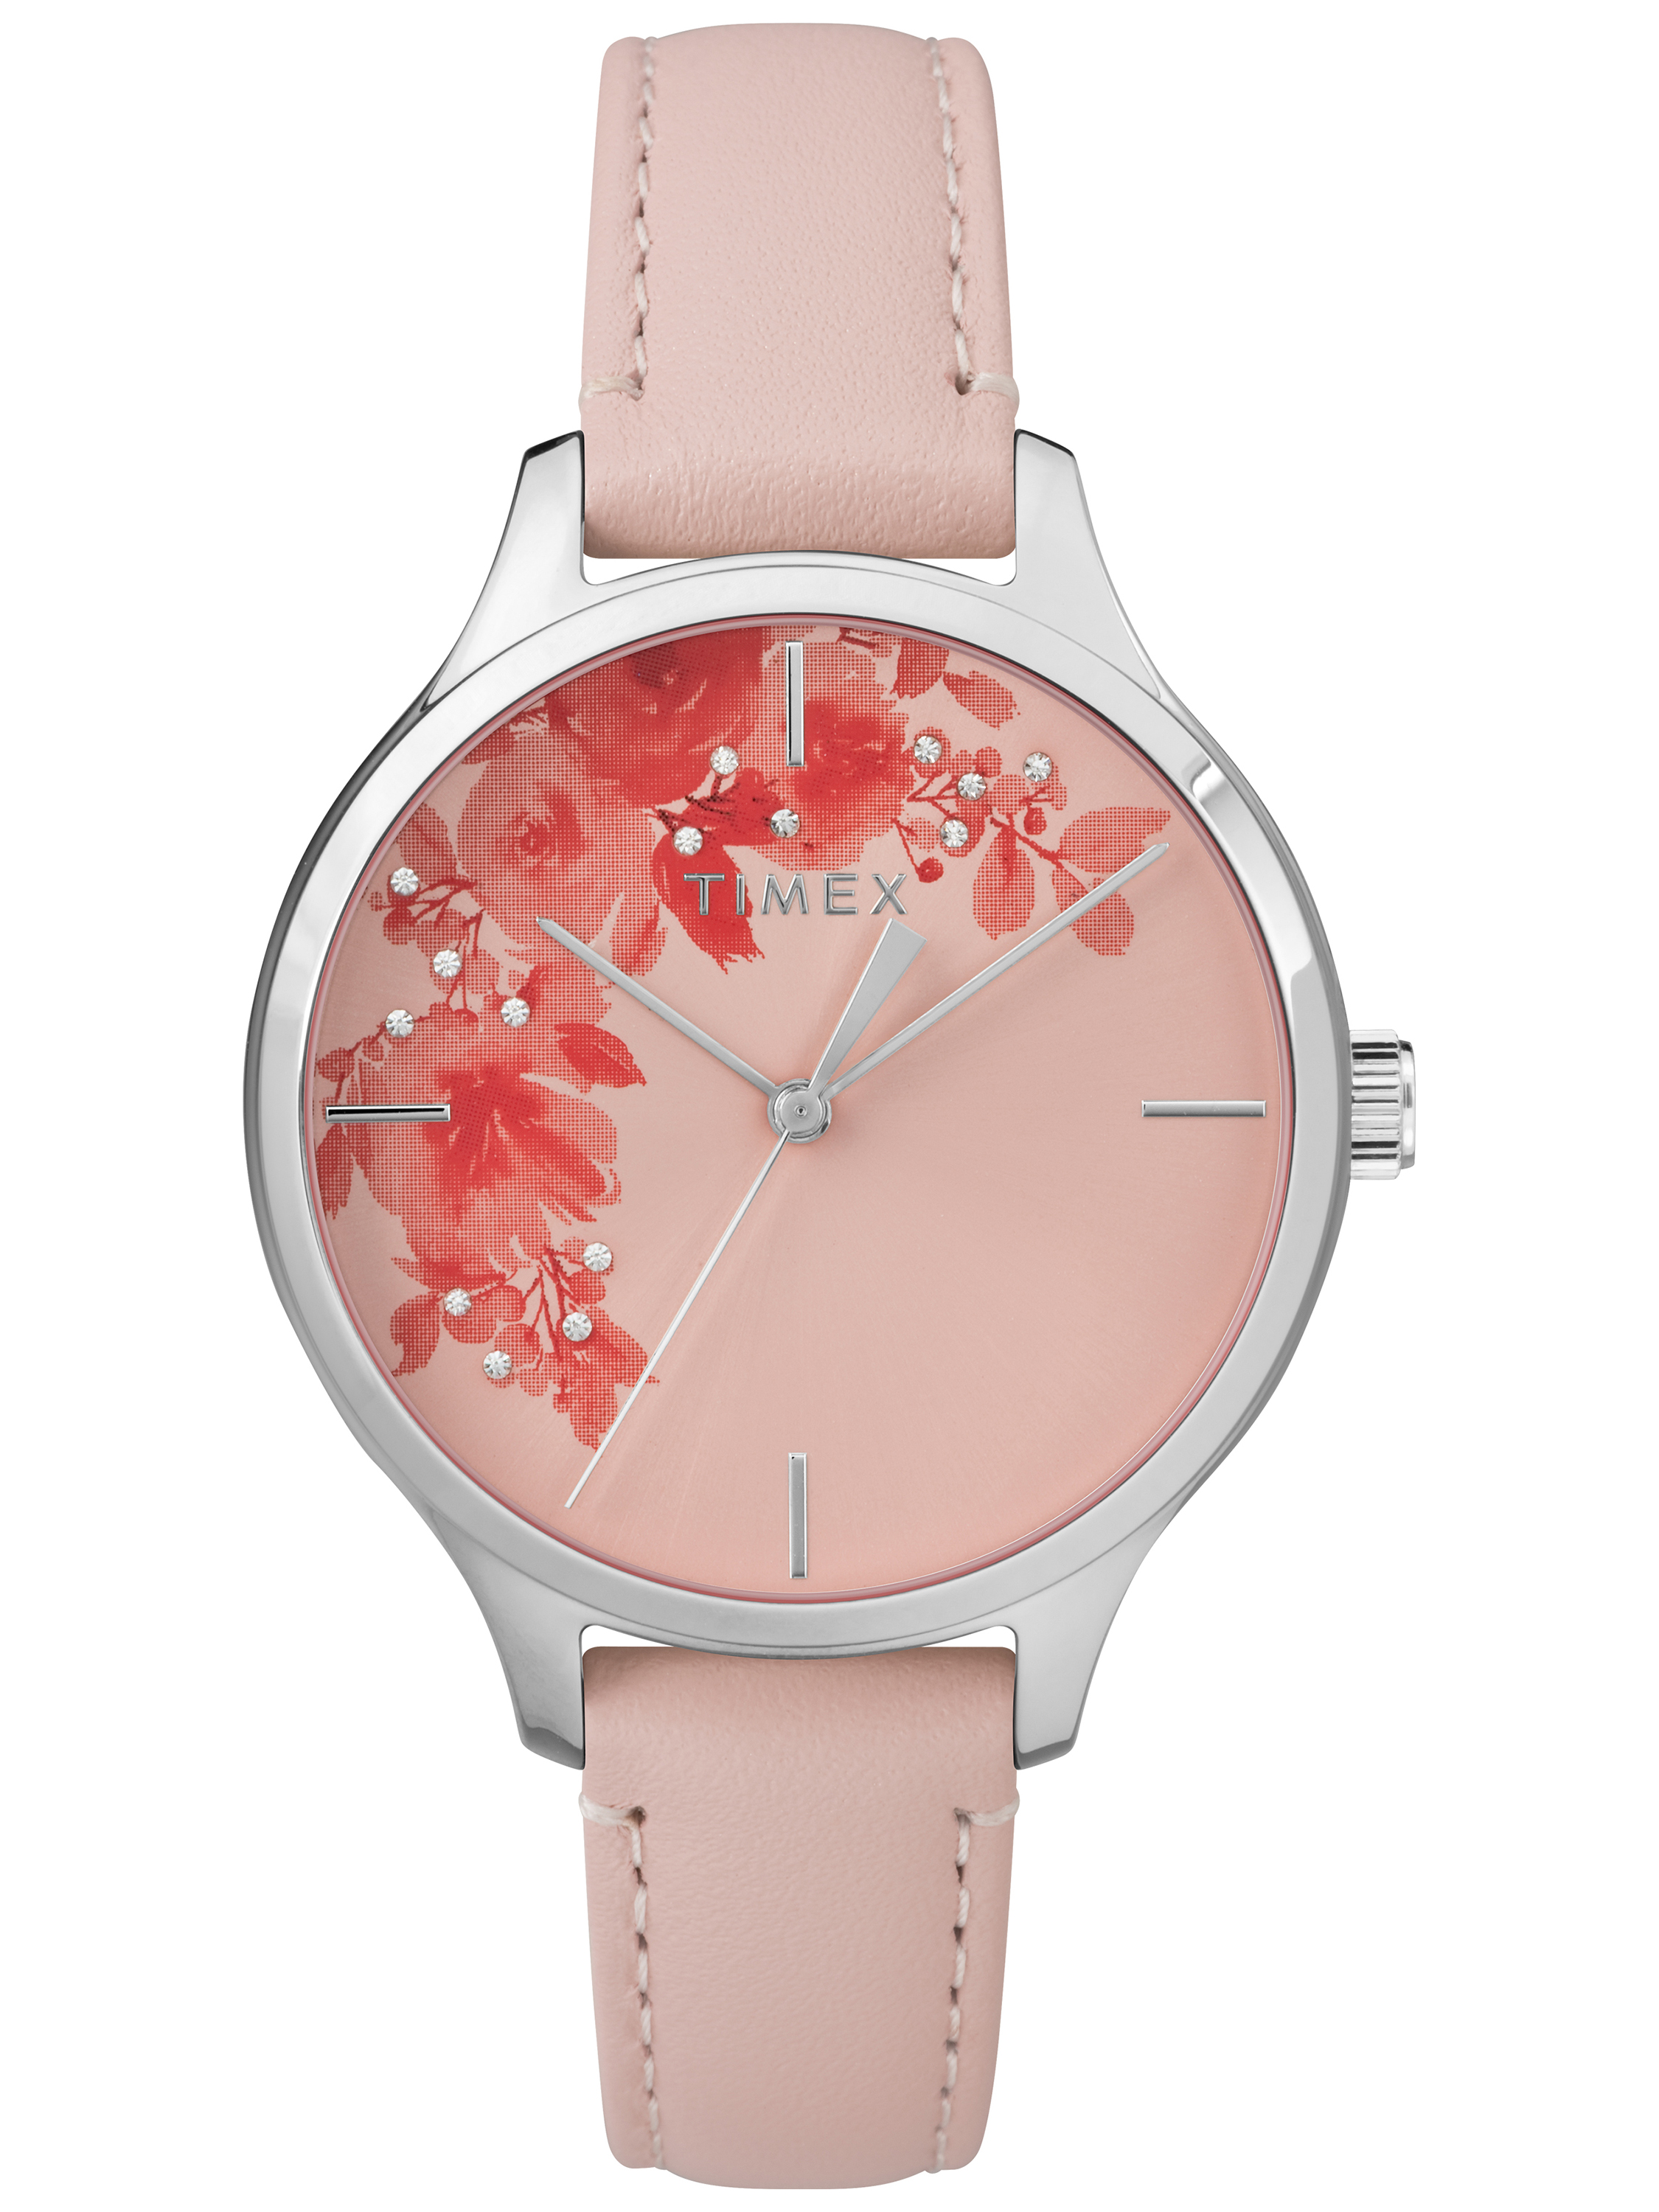 Timex Women's Crystal Bloom Pink Silver Floral Accent Watch, Leather Strap by Timex